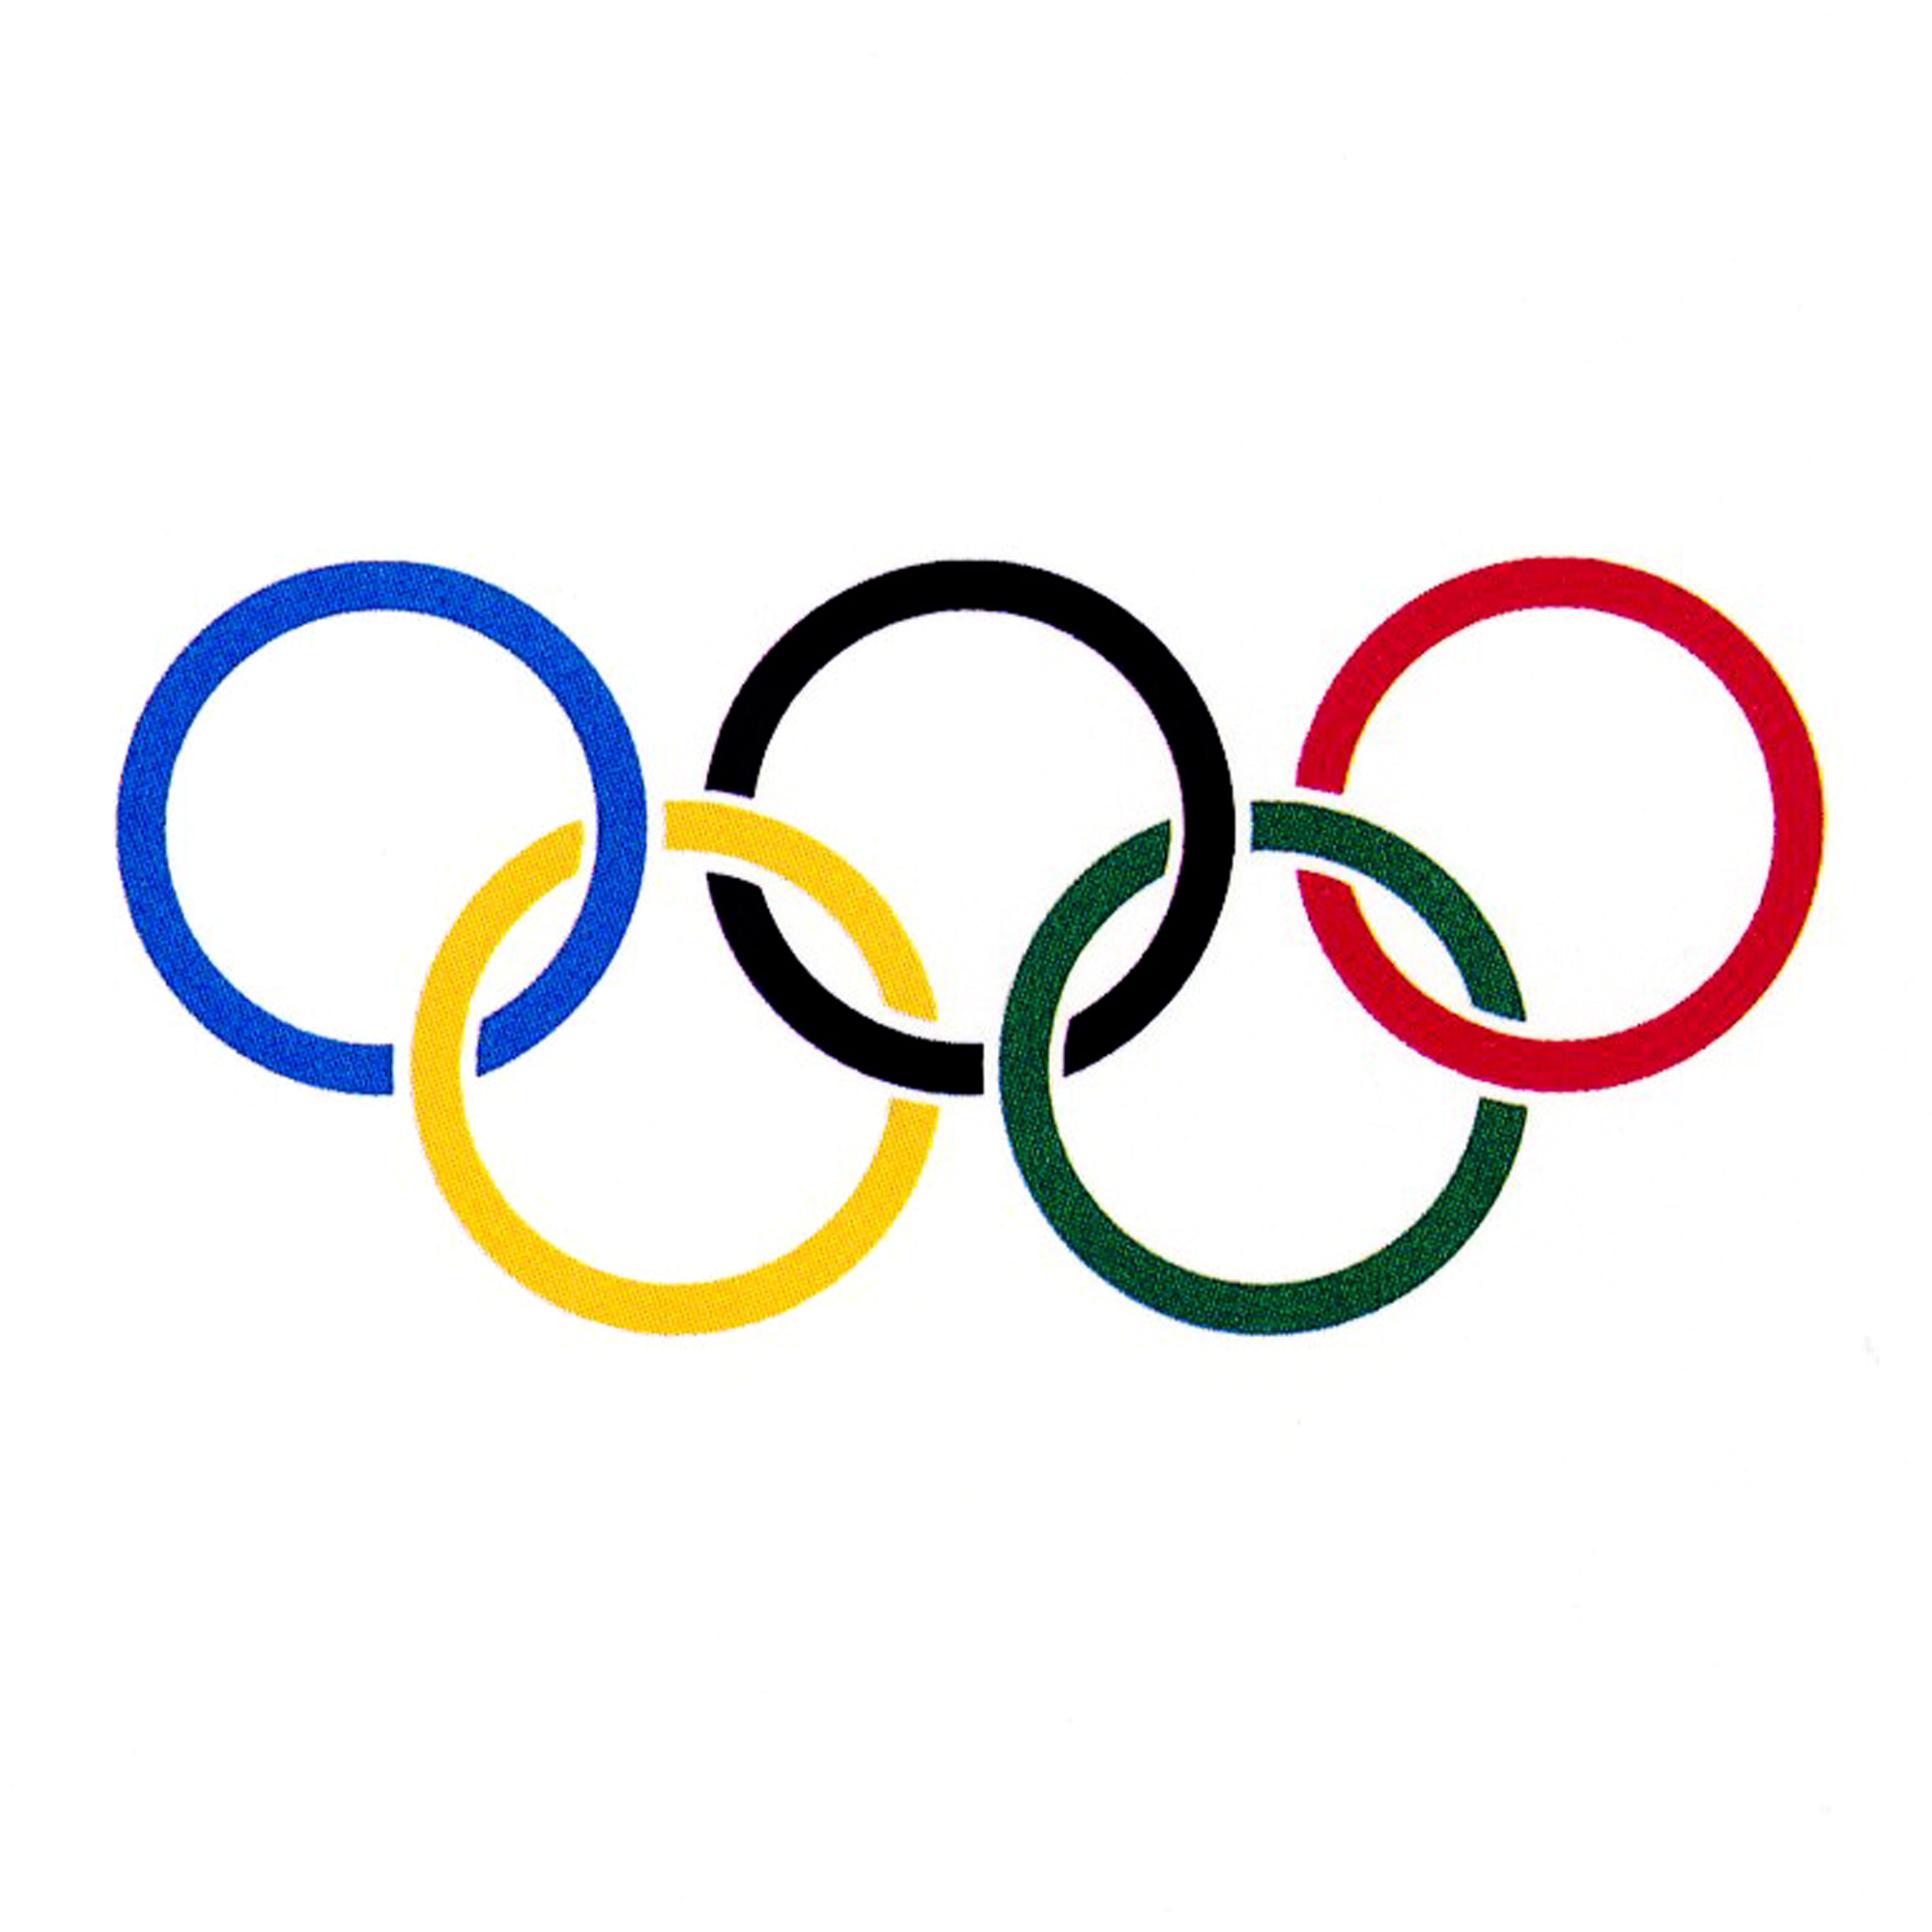 Free Olympics Rings, Download Free Clip Art, Free Clip Art.